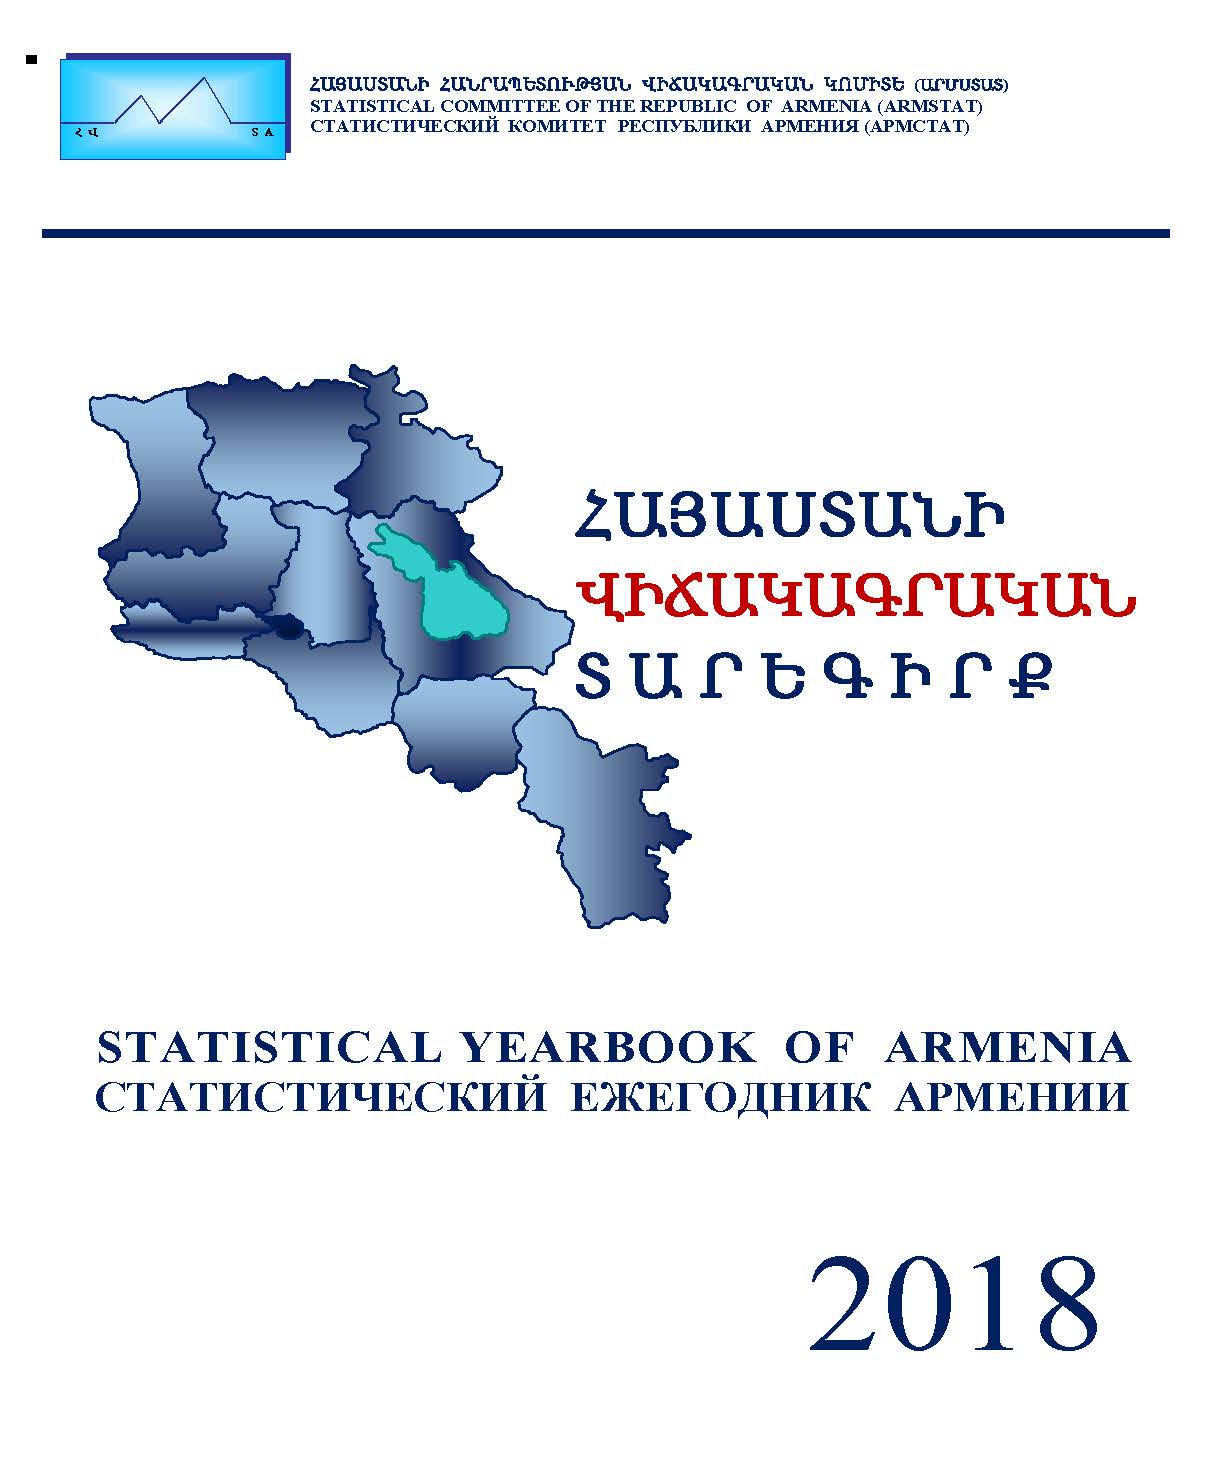 statistical committee of the republic of armenia